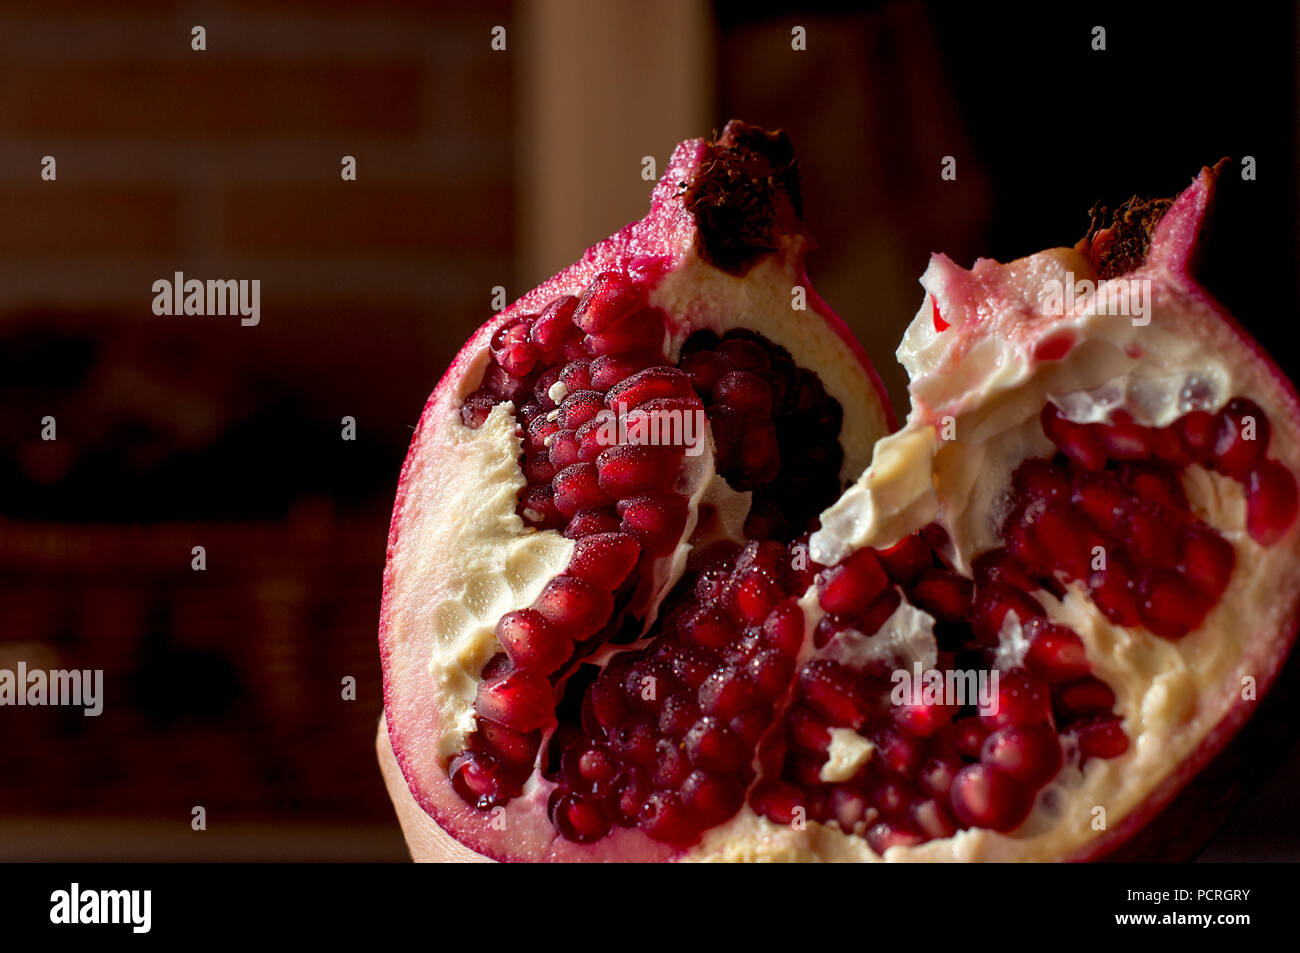 Large red juicy pomegranate. Free space for text. - Stock Image